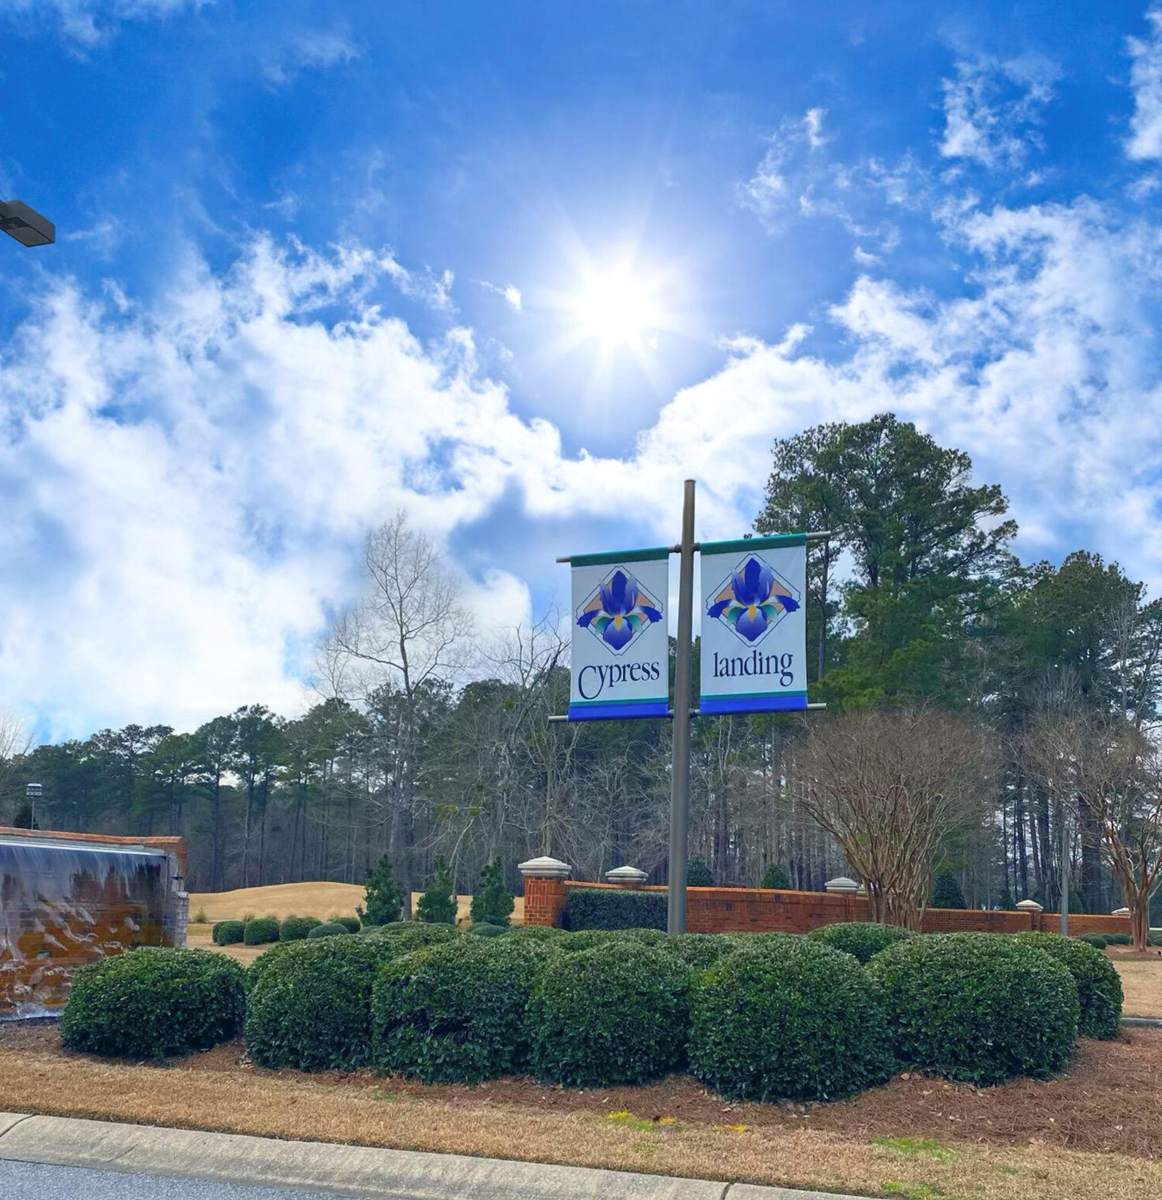 Building Lot for sale in a Golf Community NC